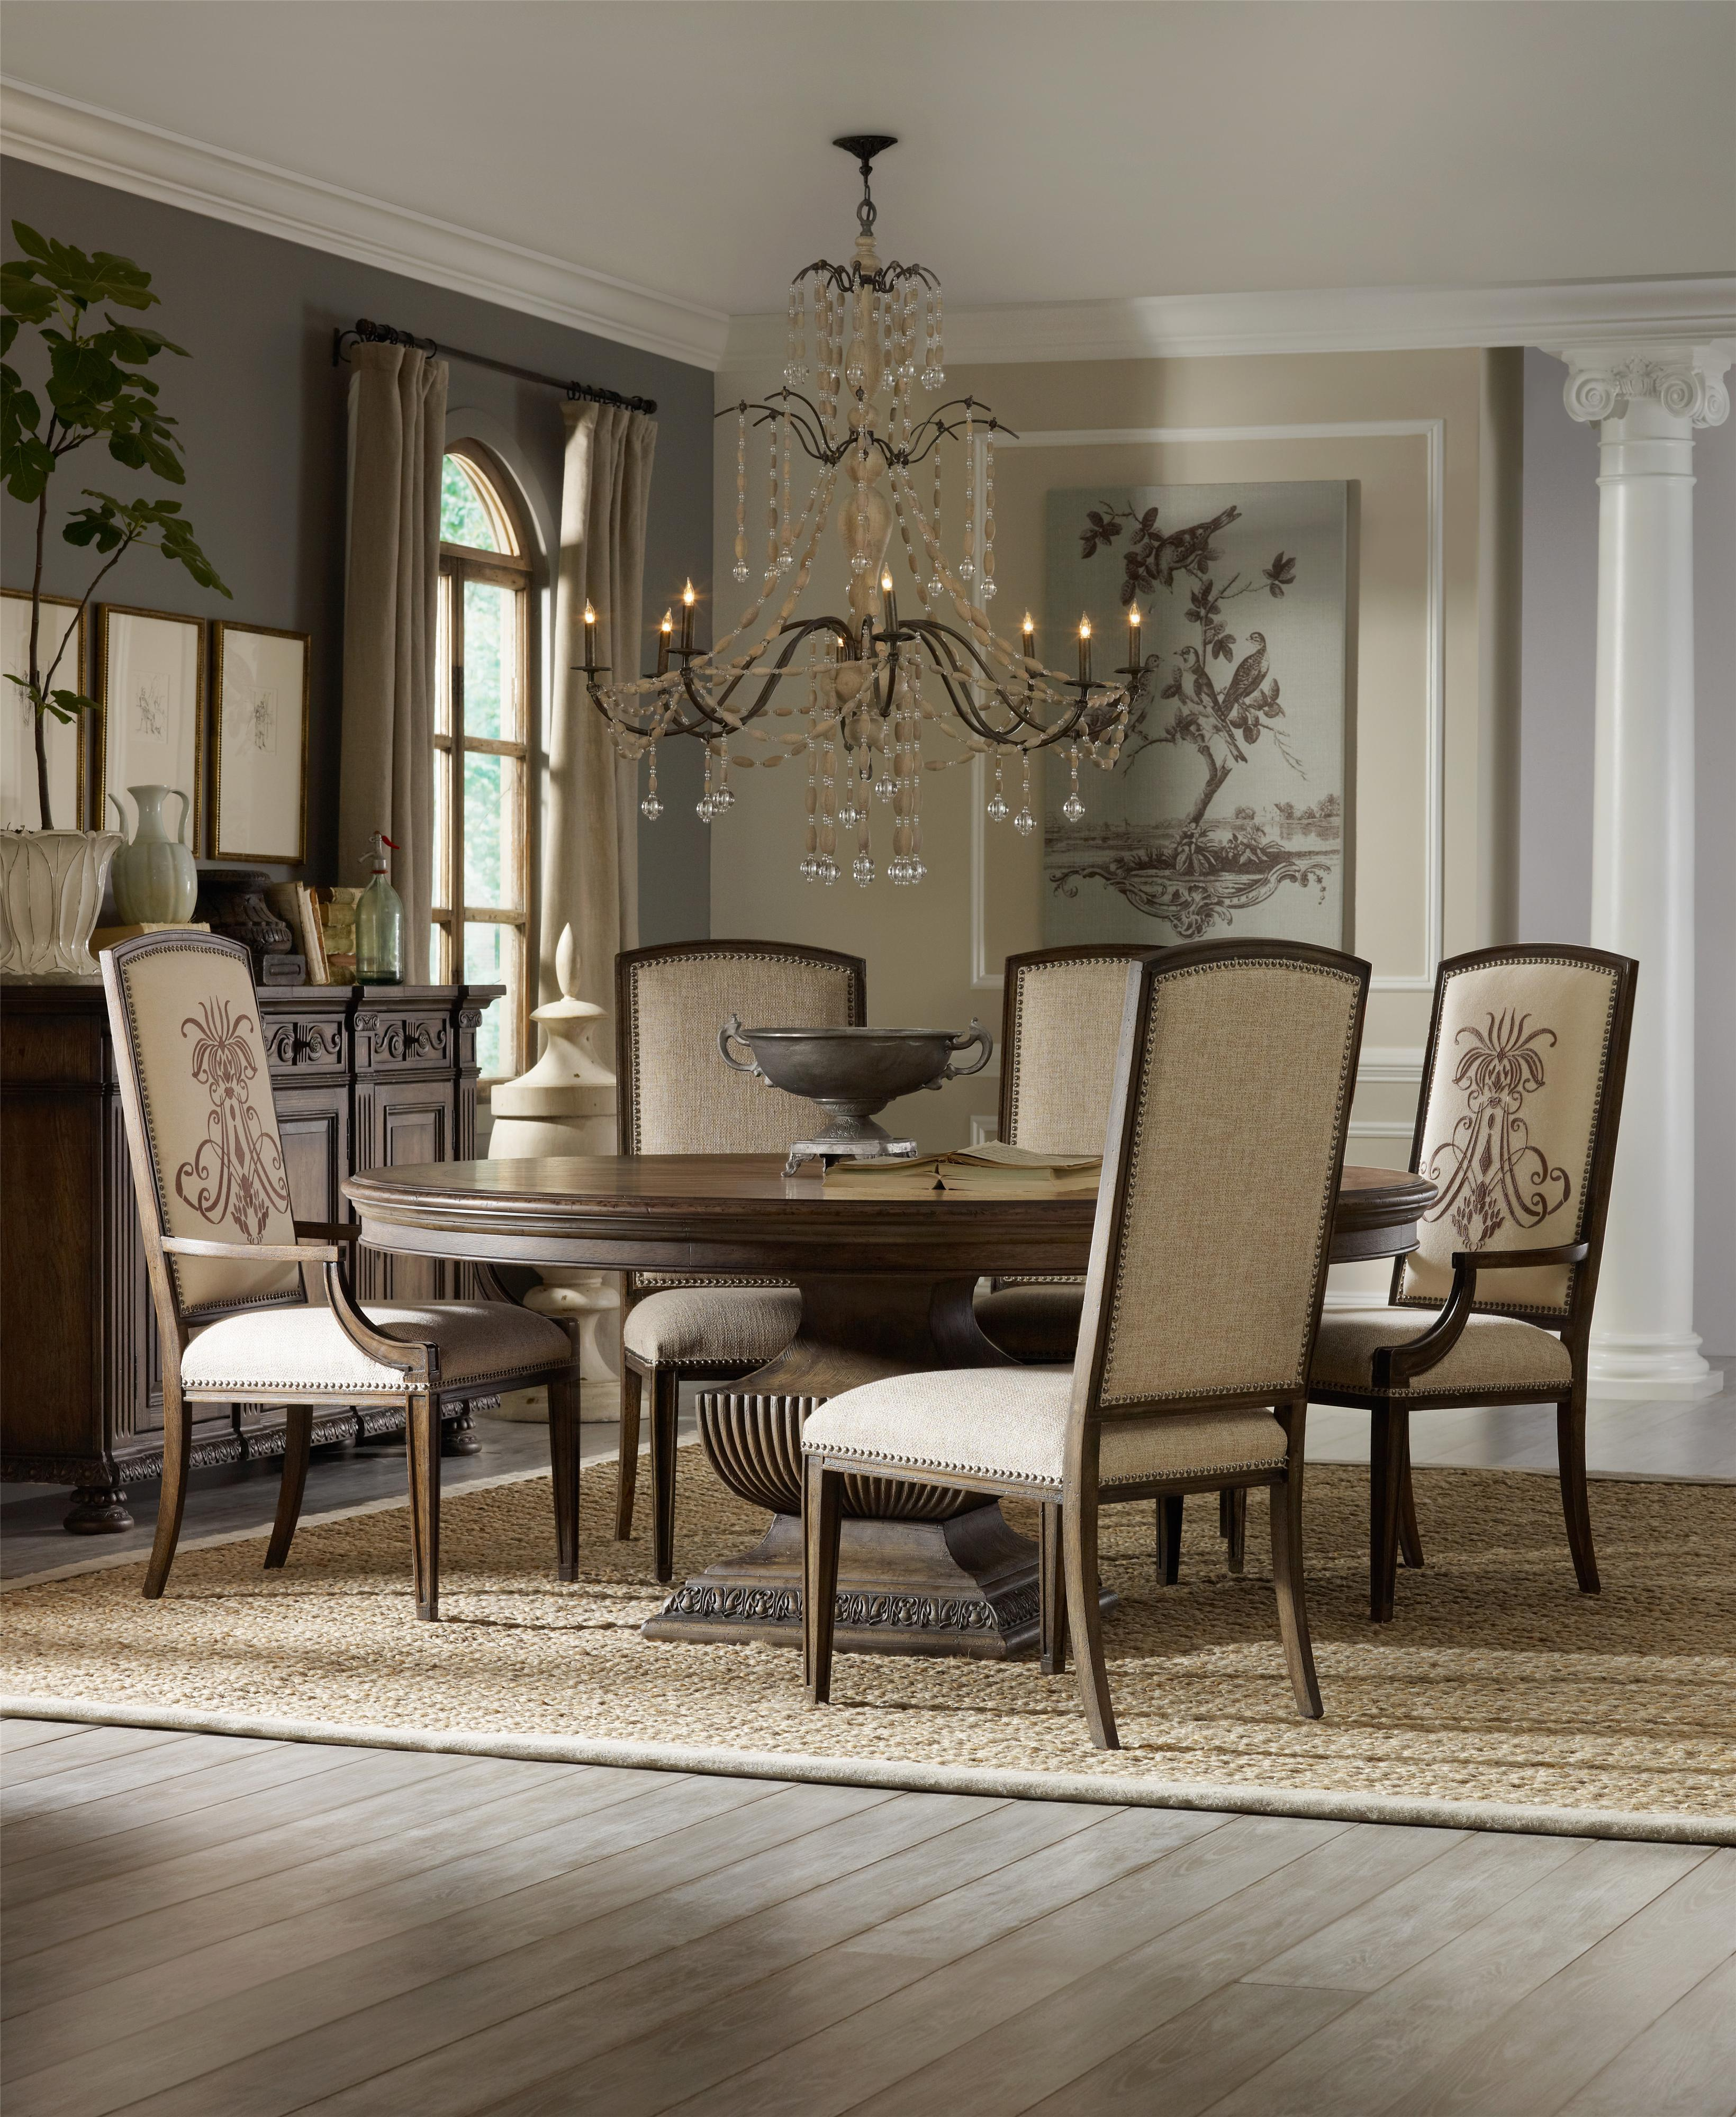 Traditional 72 Inch Round Dining Table With Grand Scale Pedestal